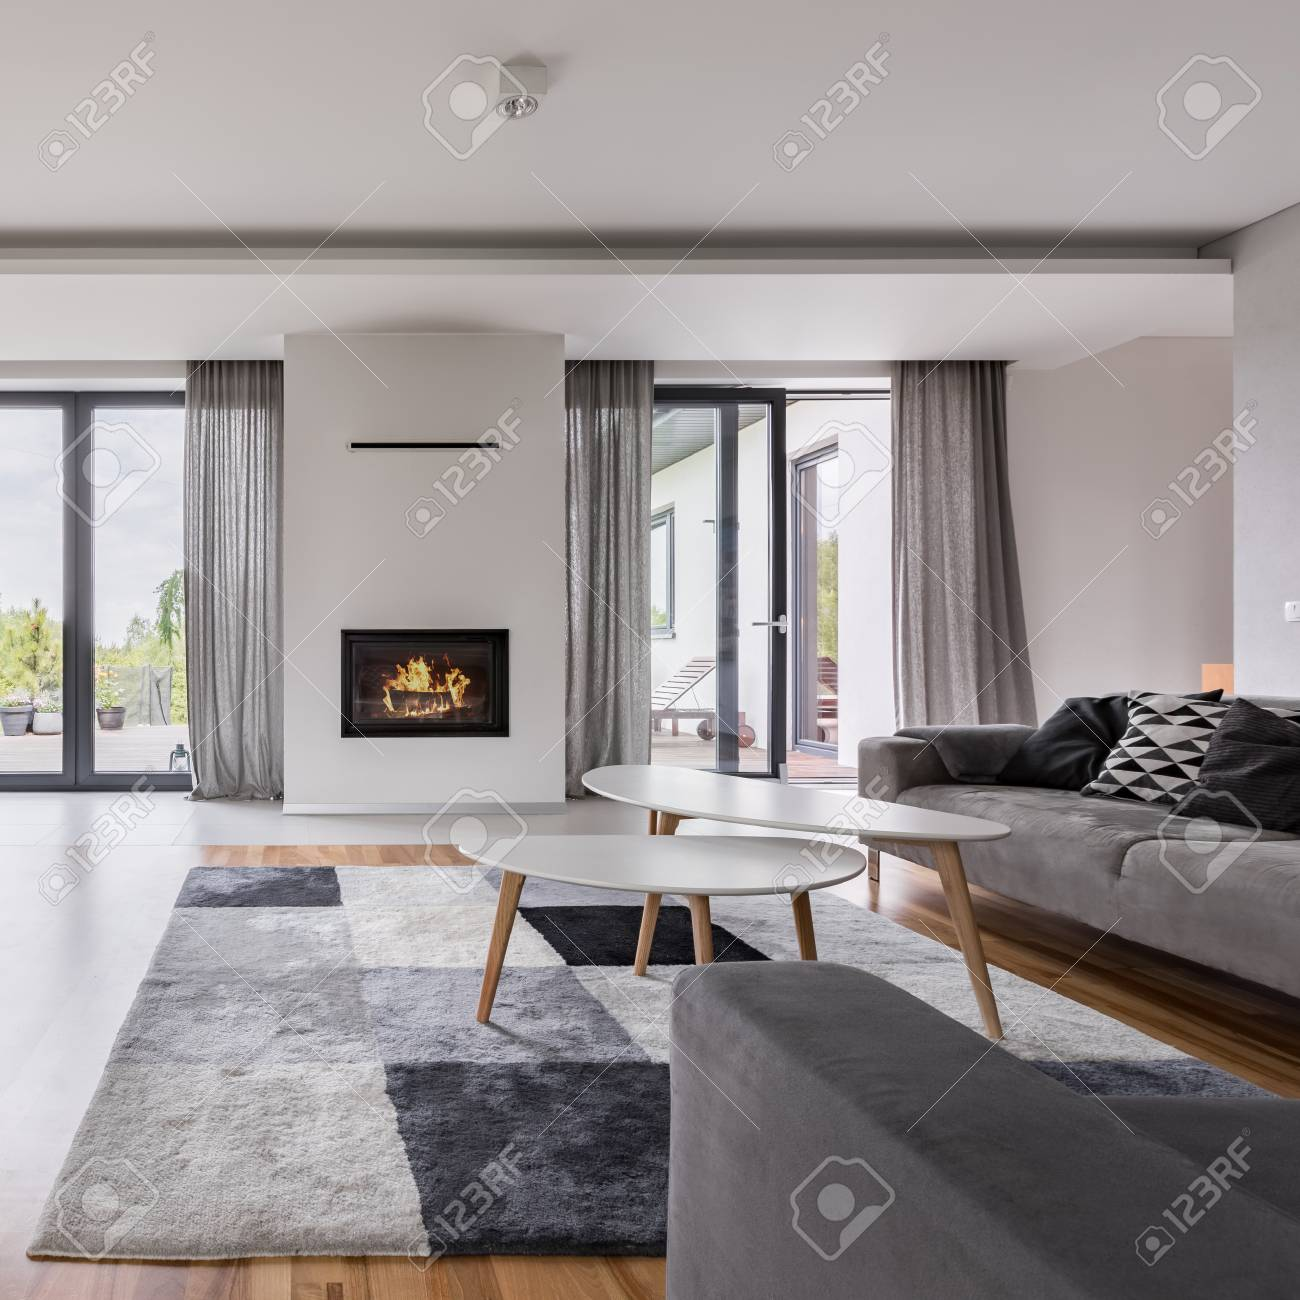 elegant living rooms with fireplaces room ideas cream sofa white fireplace tv coffee table and stock photo two couches